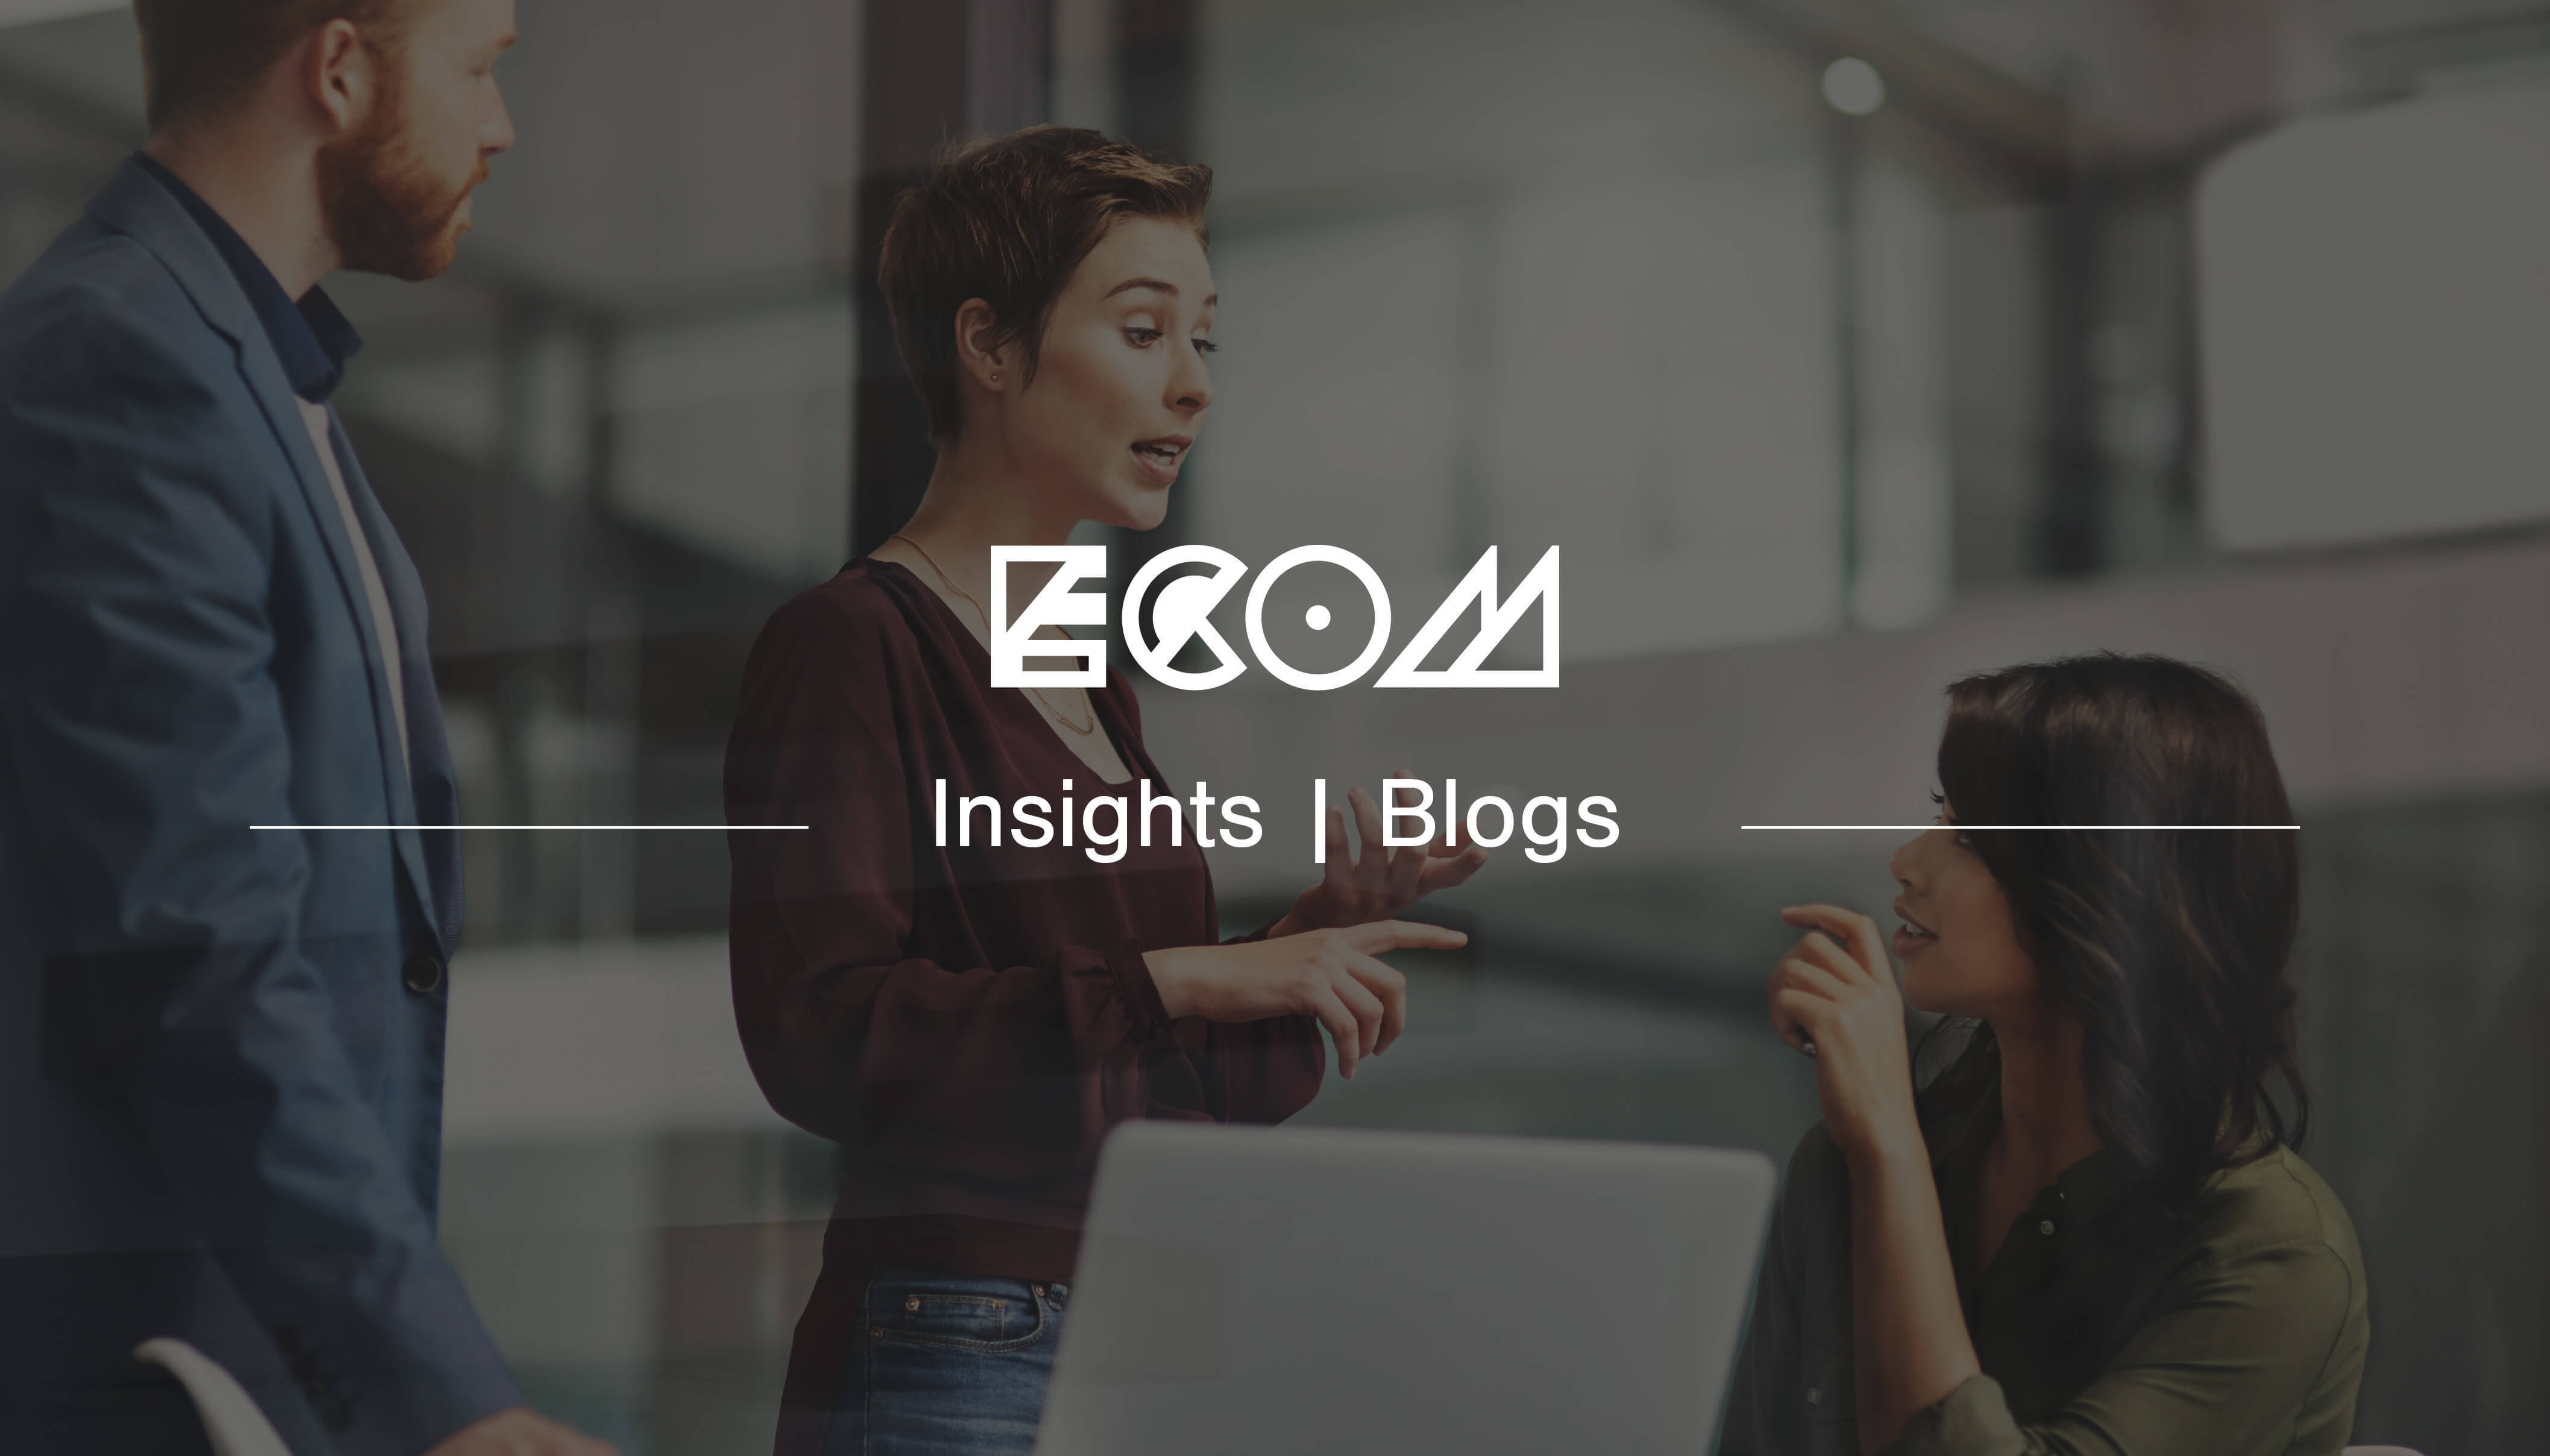 ECOM branded header banner for a blog with a background picture of three people talking